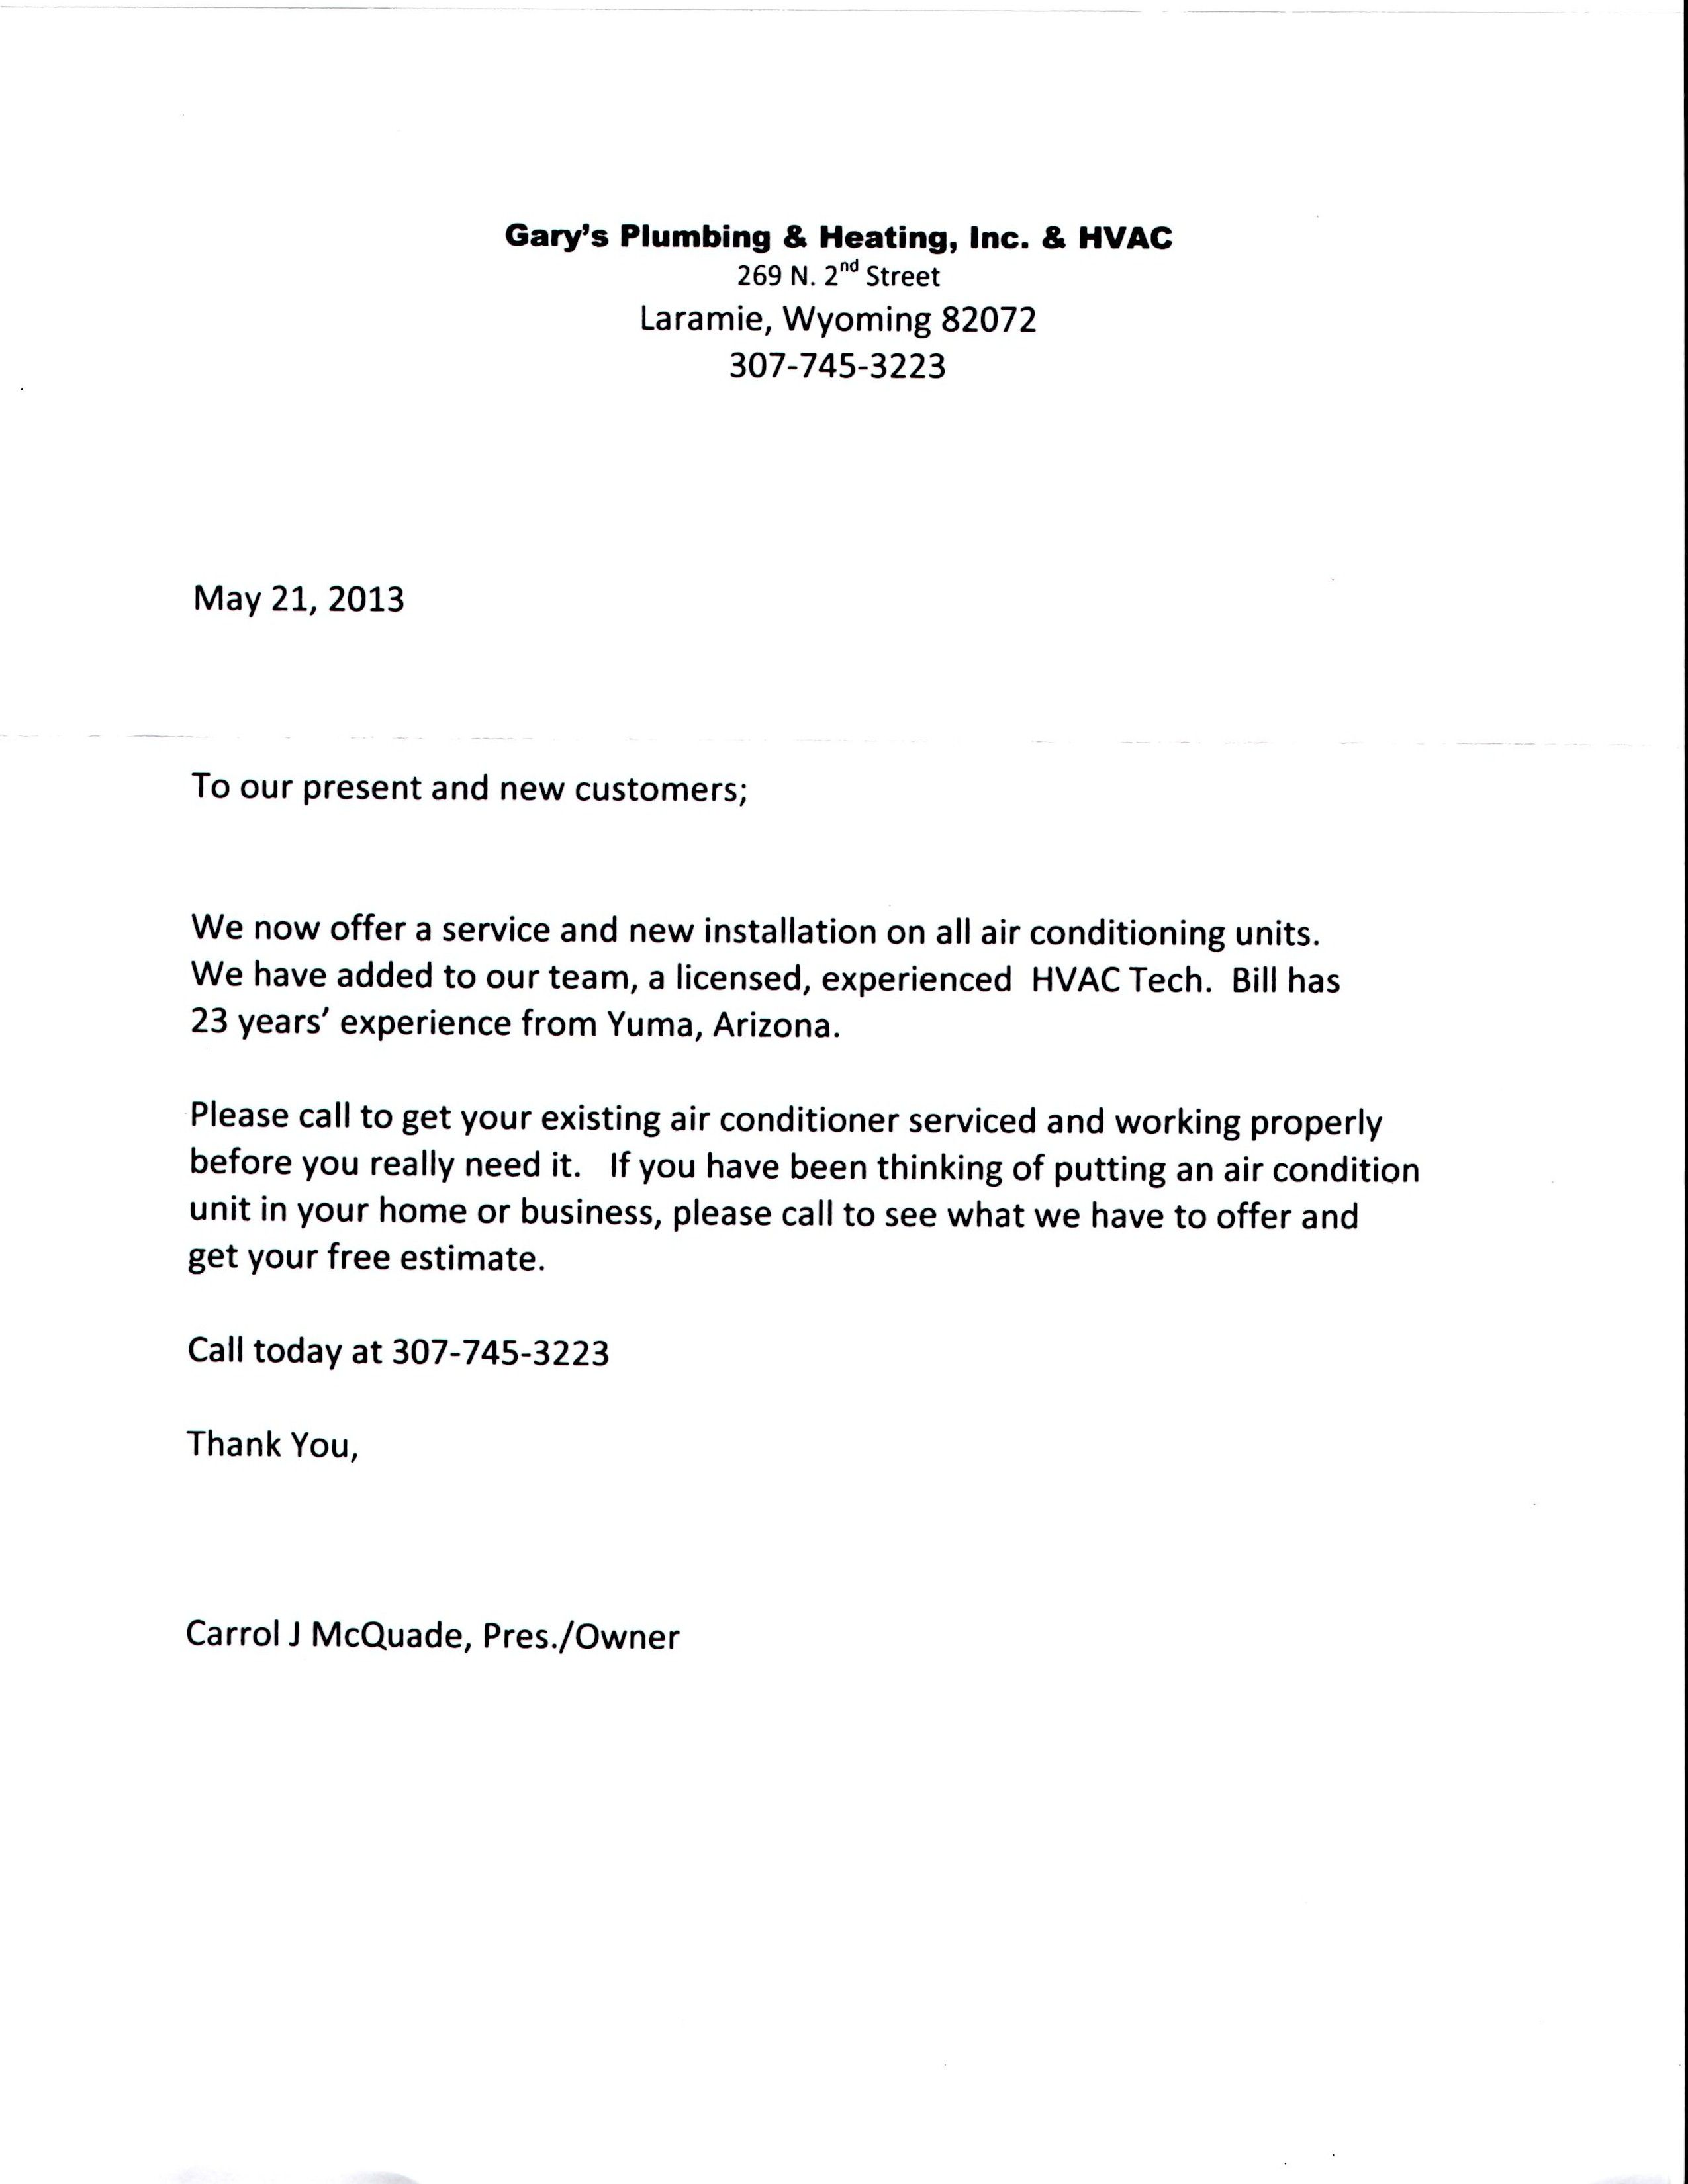 Letter To Customers Welcoming Bill To The Team Hvac Http